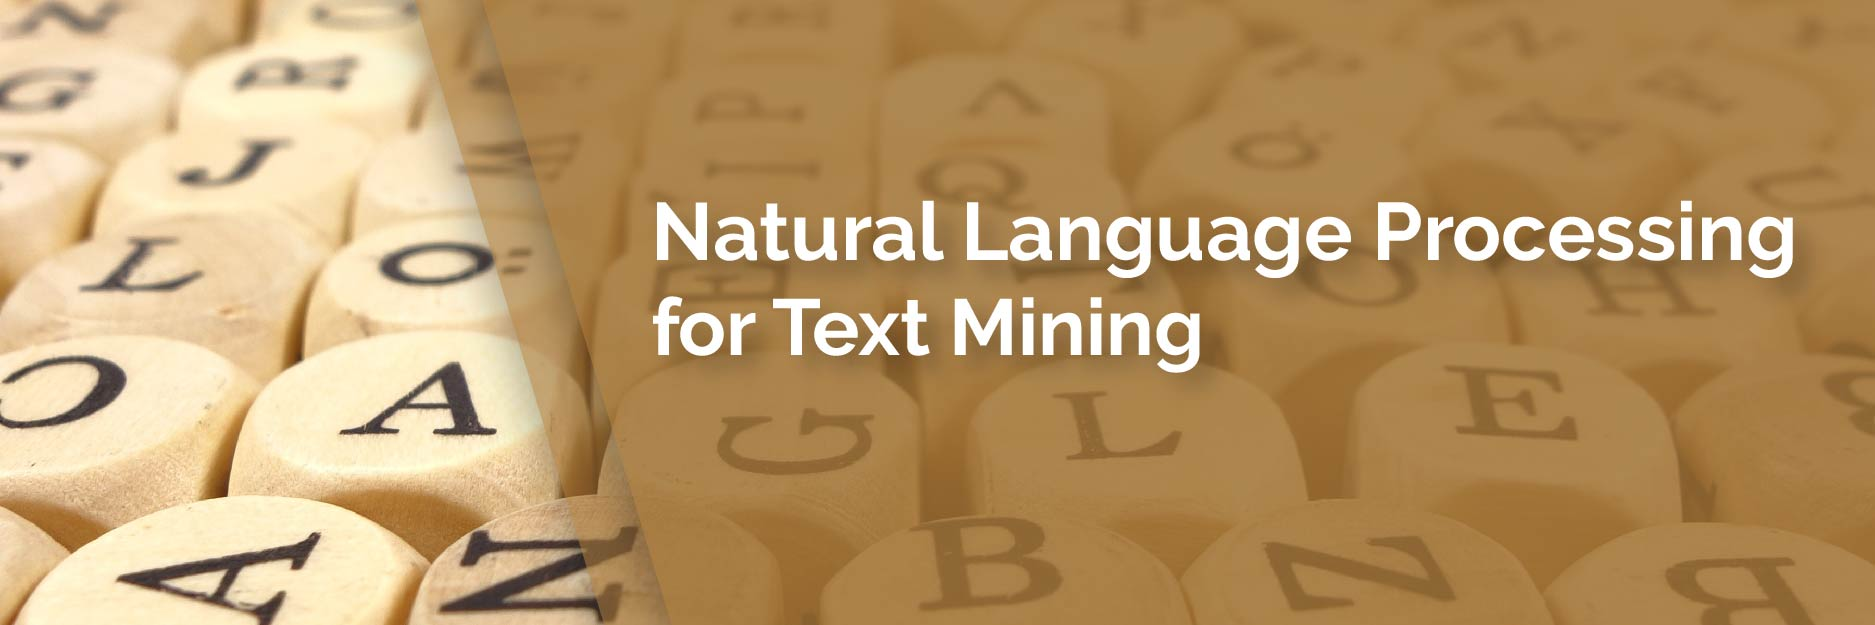 Natural Language Processing for Text Mining-training-in-bangalore-by-zekelabs